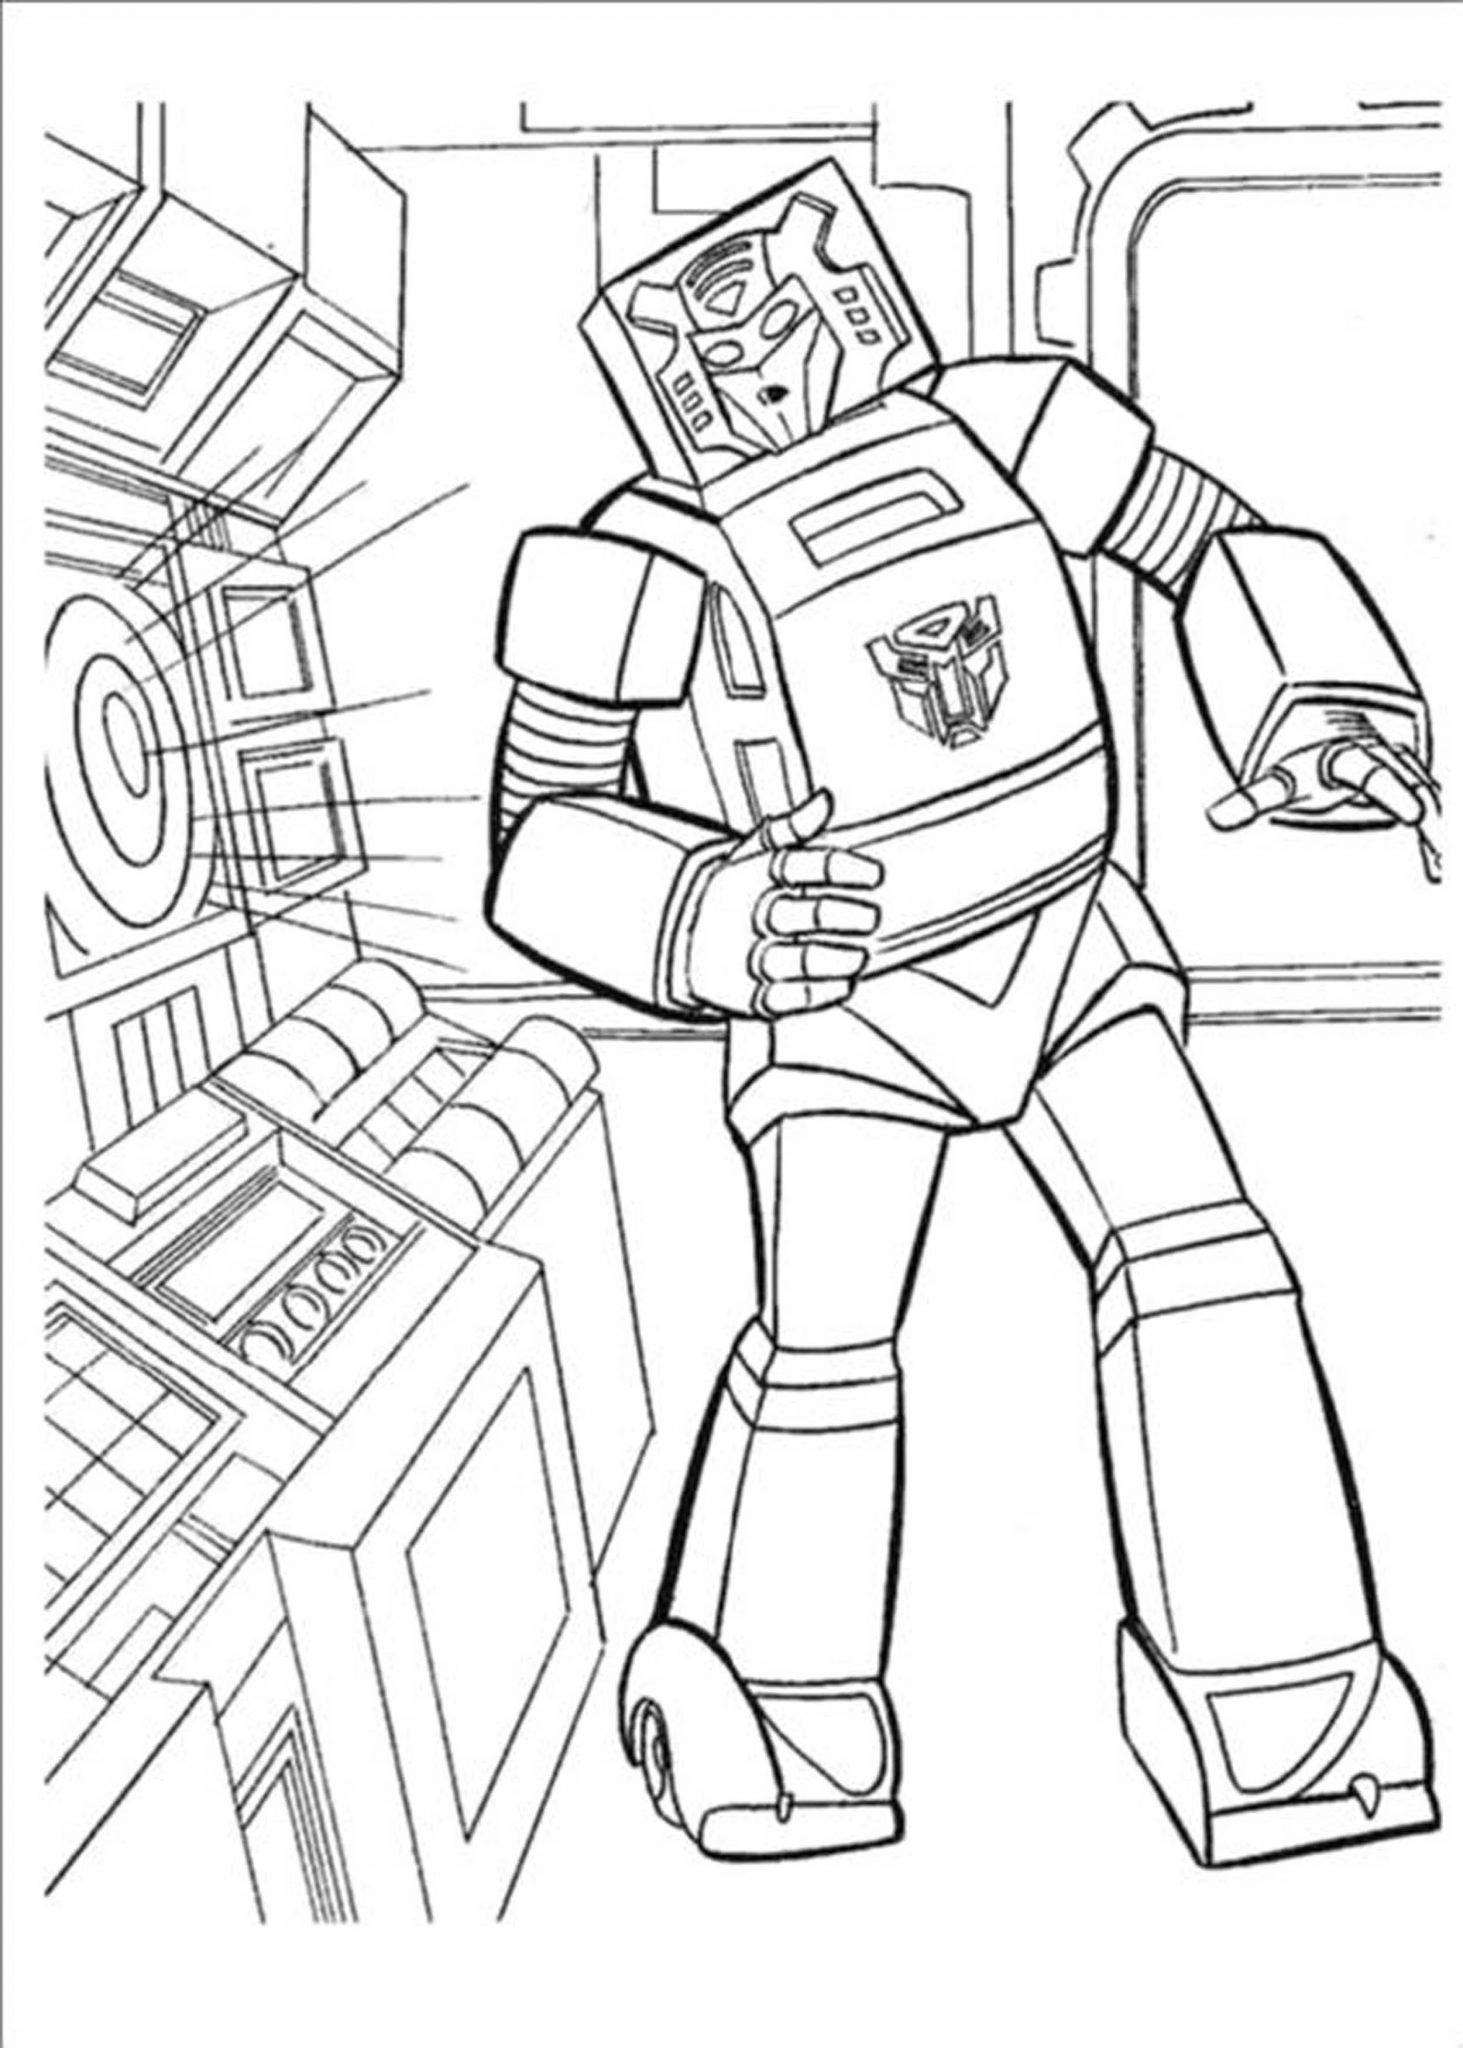 coloring transformers print download inviting kids to do the transformers coloring transformers 1 2